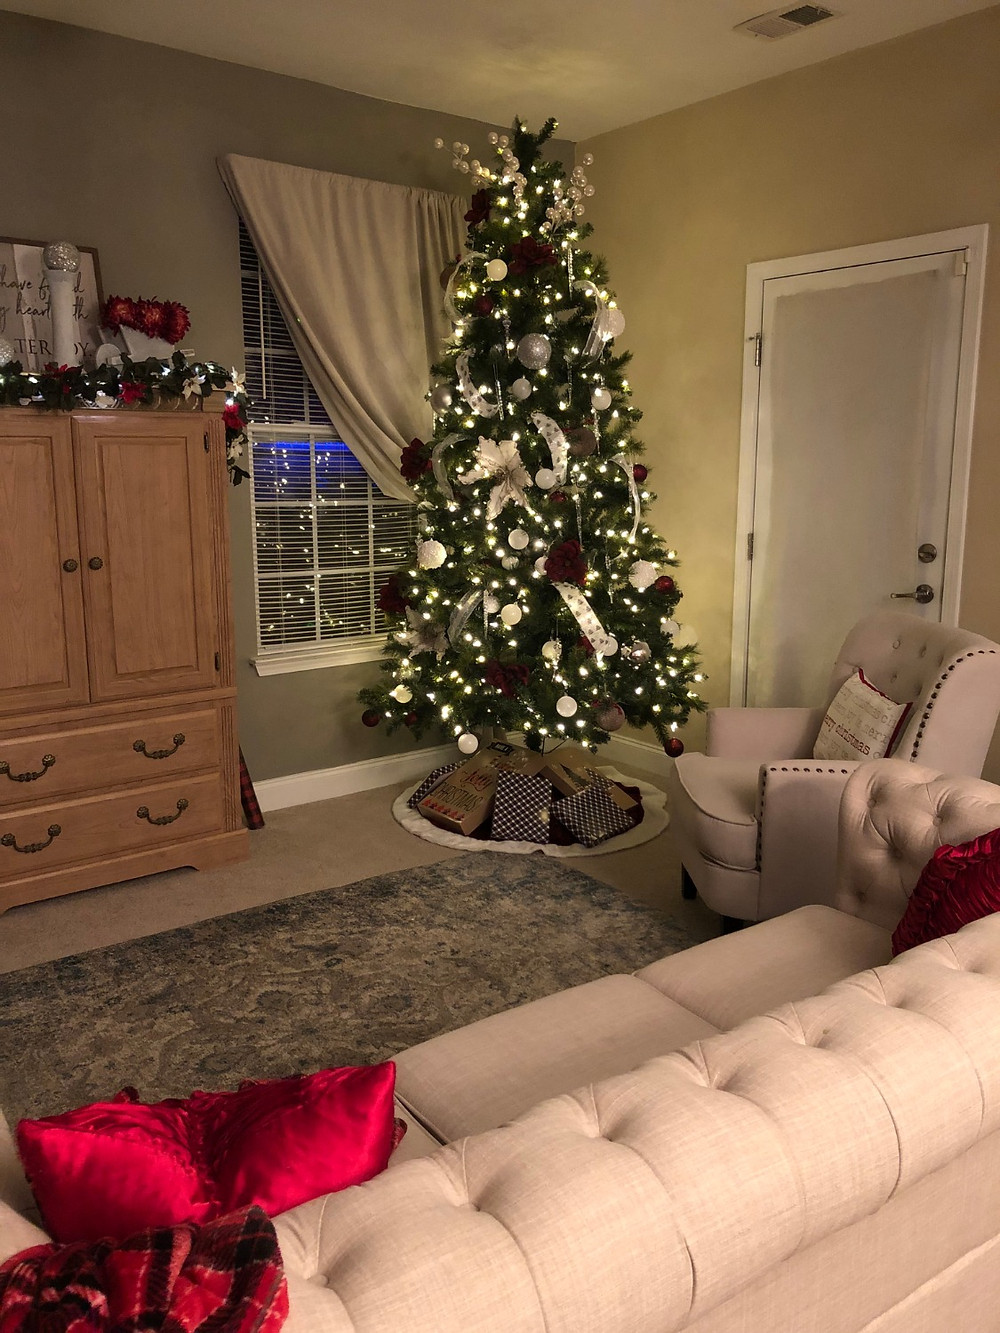 Christmas formal living room at night